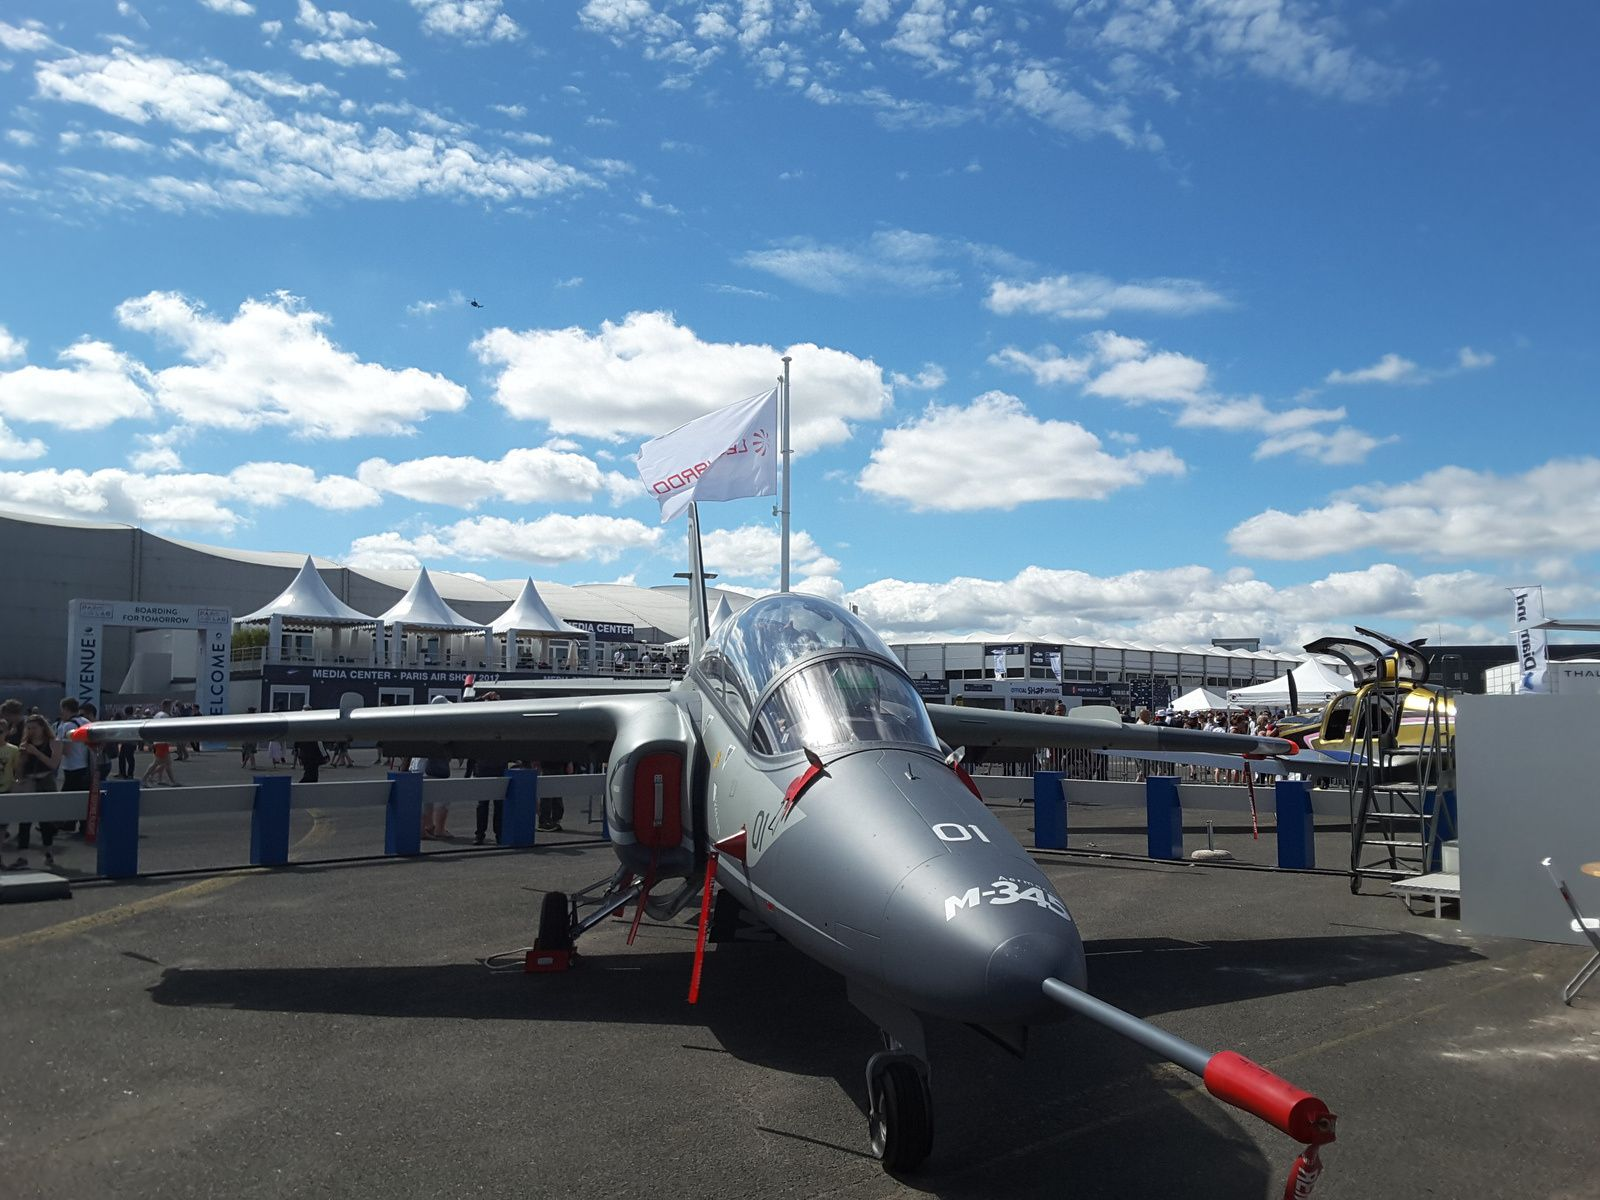 Salon a ronautique du bourget 2014 - Salon aeronautique du bourget ...